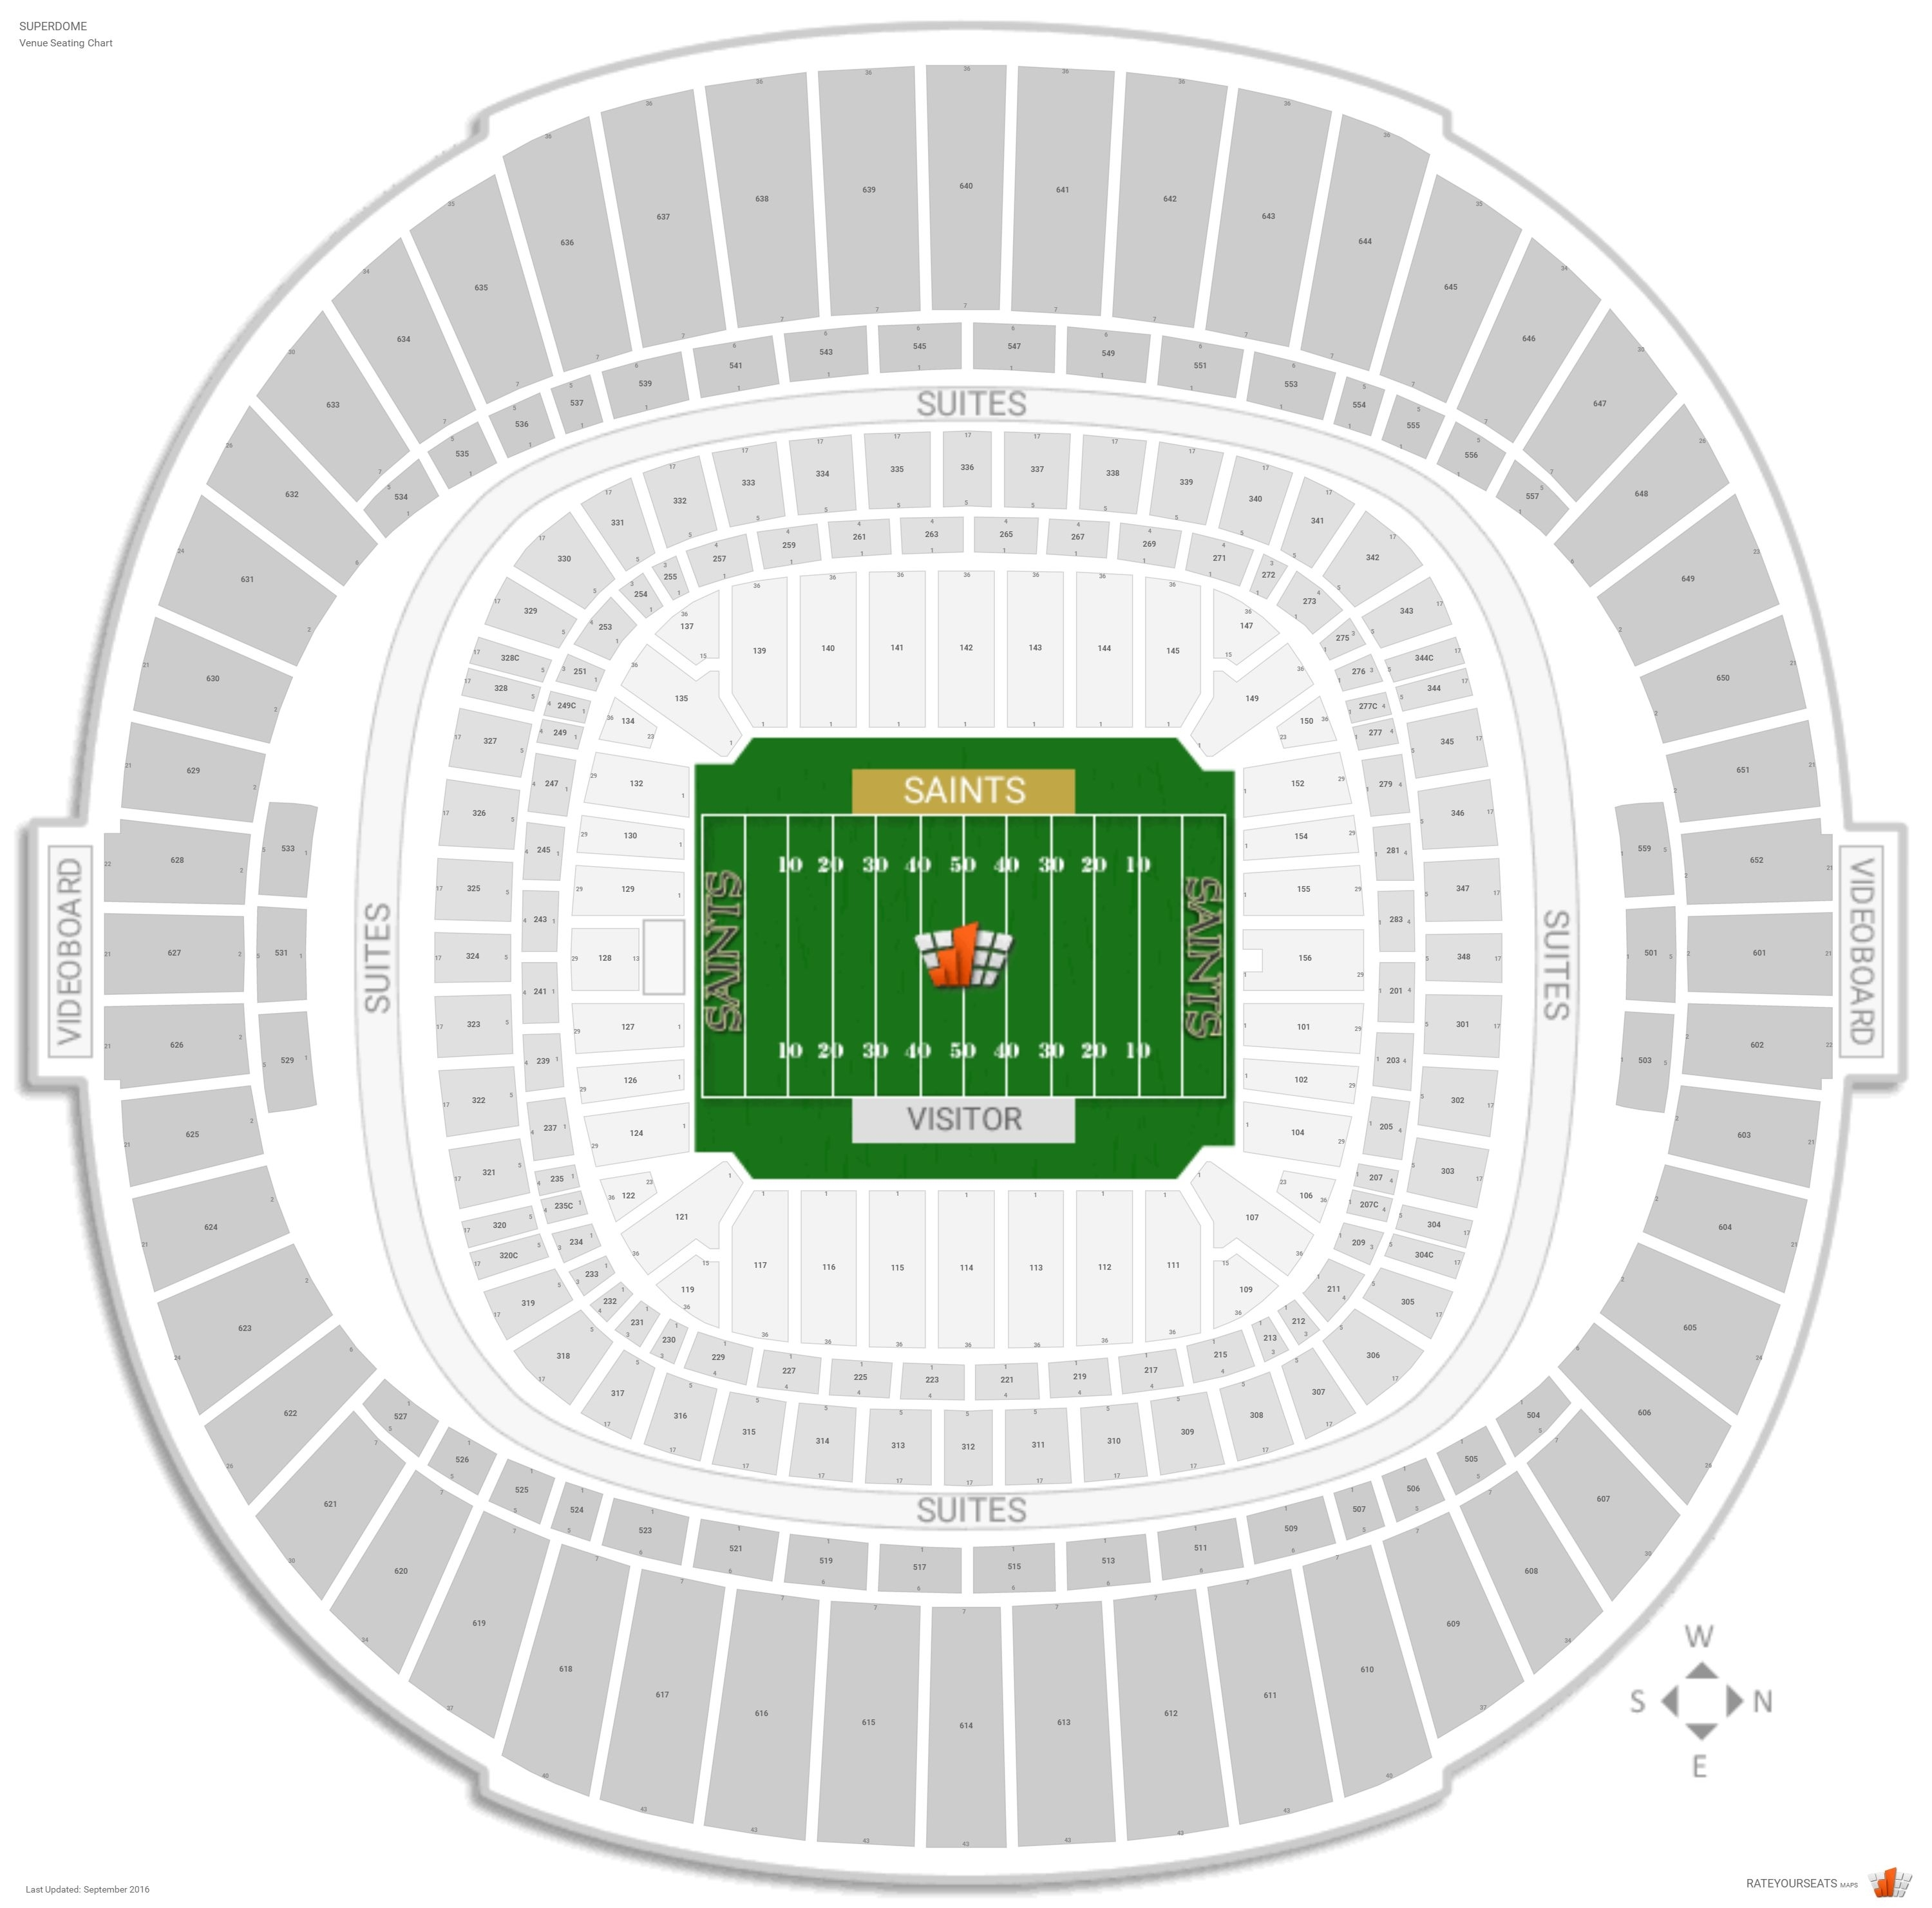 New Orleans Saints Seating Guide - Superdome - Rateyourseats intended for New Orleans Super Bowl Seating Chart